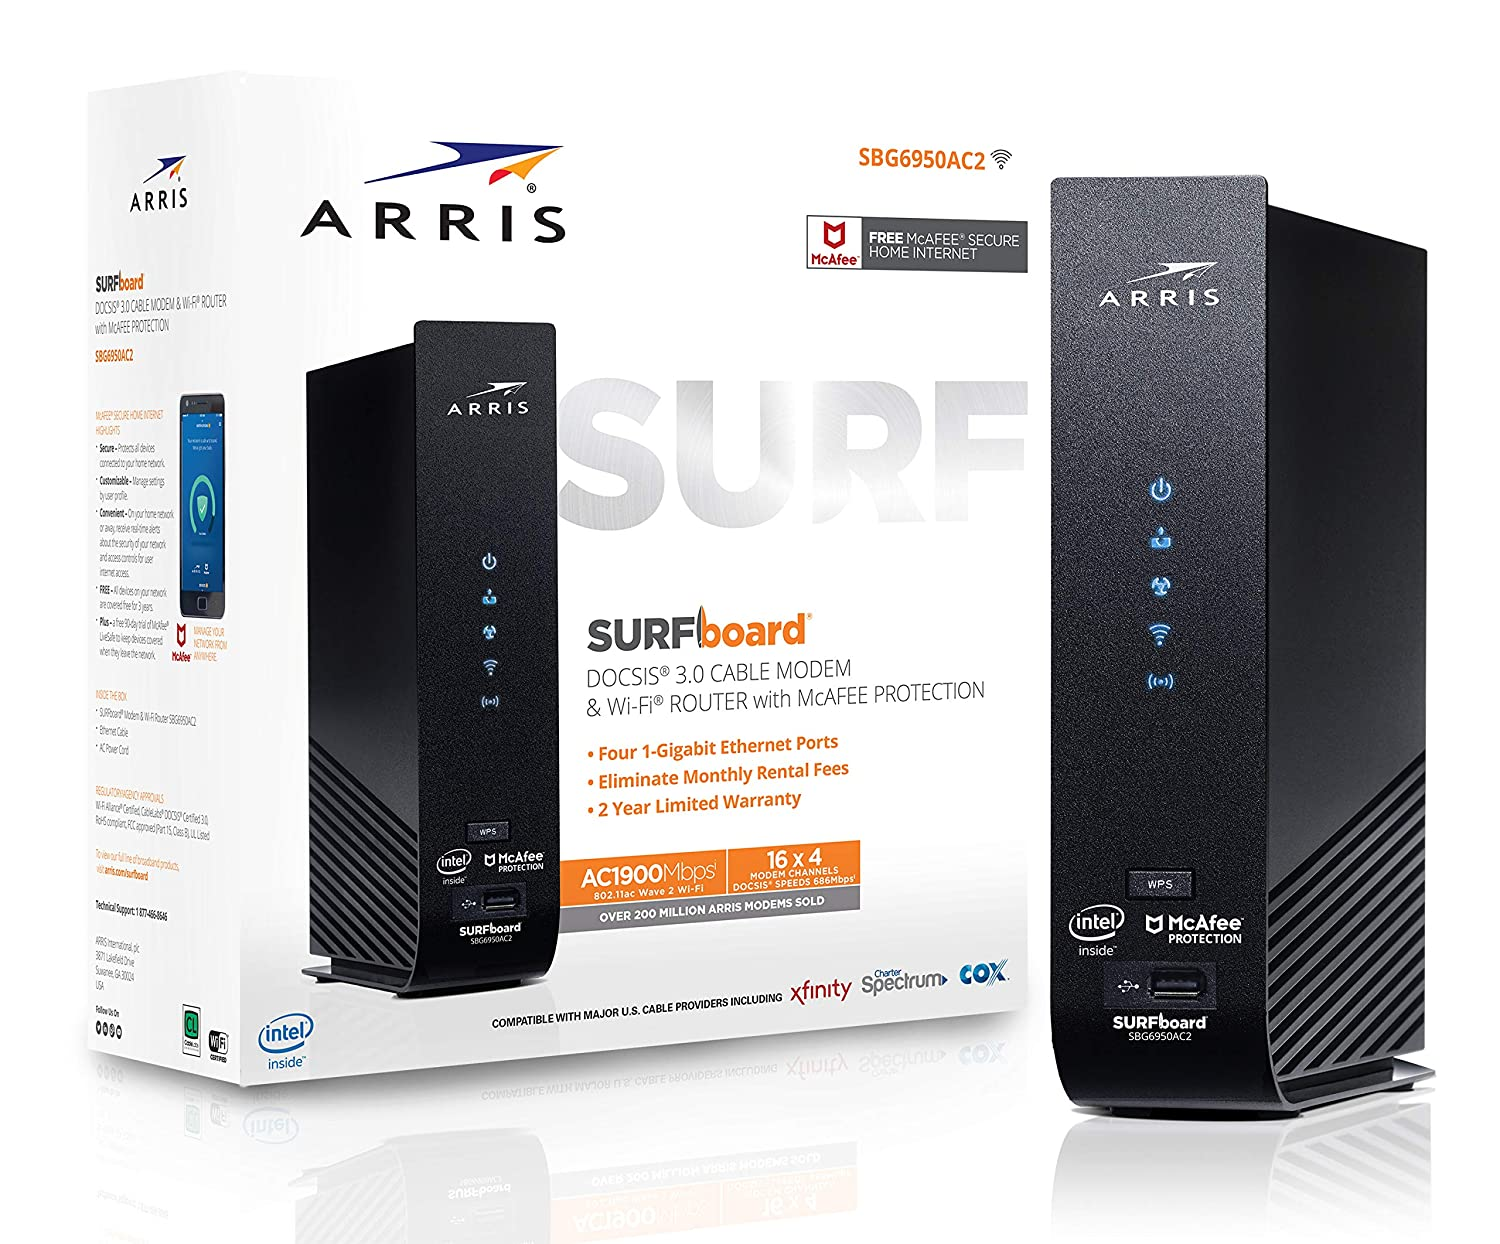 ARRIS SURFboard (16x4) DOCSIS 3.0 Cable Modem Plus AC1900 Dual Band Wi-Fi Router, 686 Mbps Max Speed, Certified for Comcast Xfinity, Spectrum, Cox & more (SBG6950AC2)